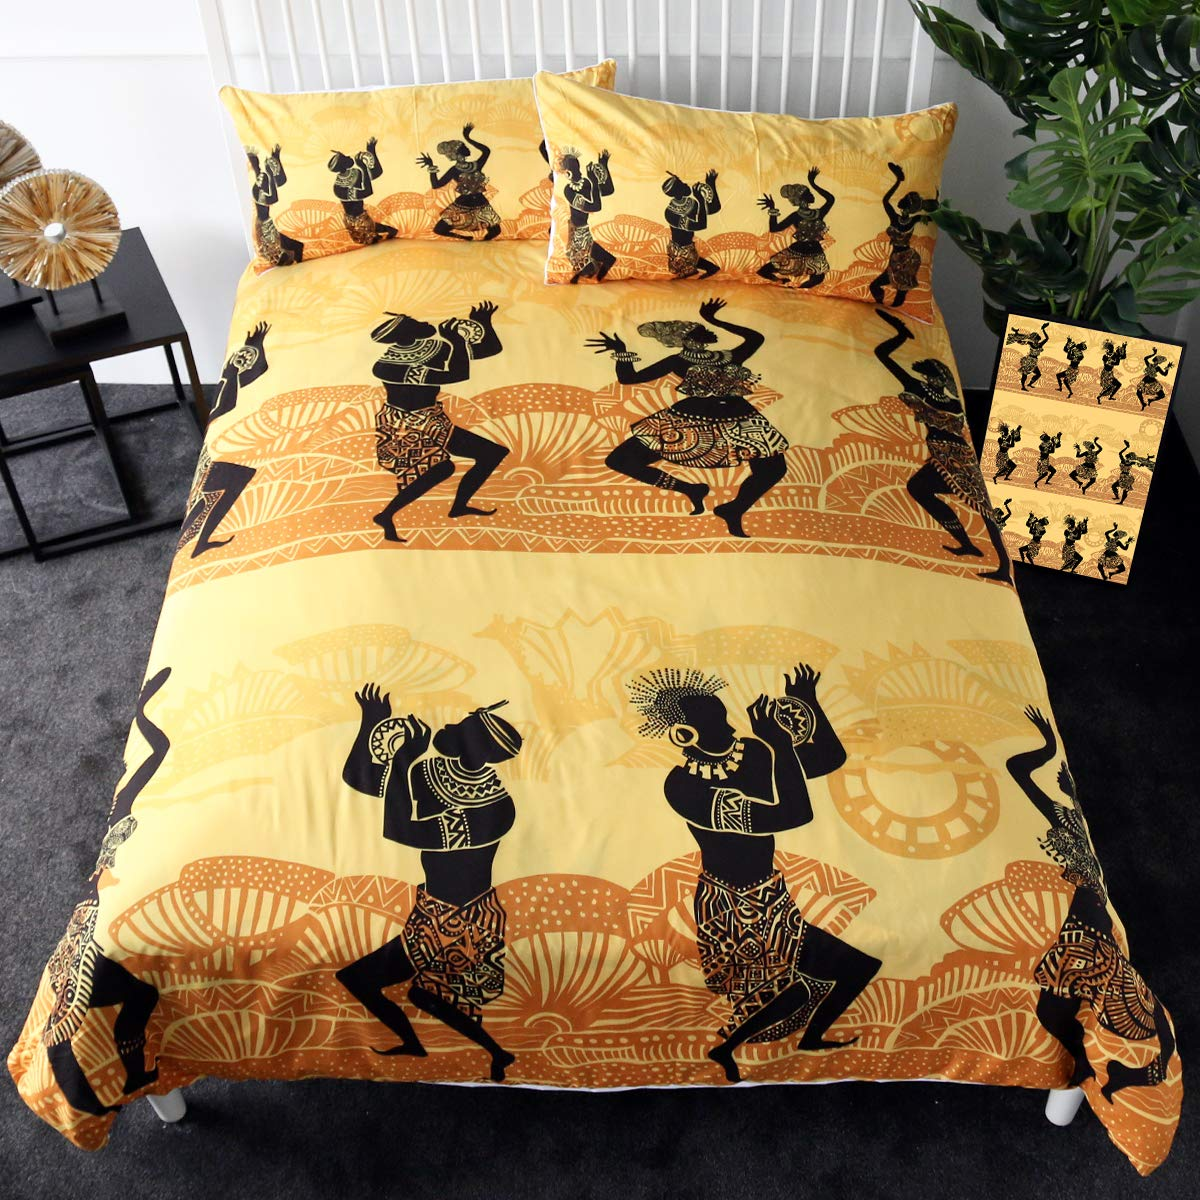 Sleepwish Carnival Bedding 3 Pieces Egypt Retro Duvet Cover Native Costumes  African Dance Celebration Themed Bed Set (Full)